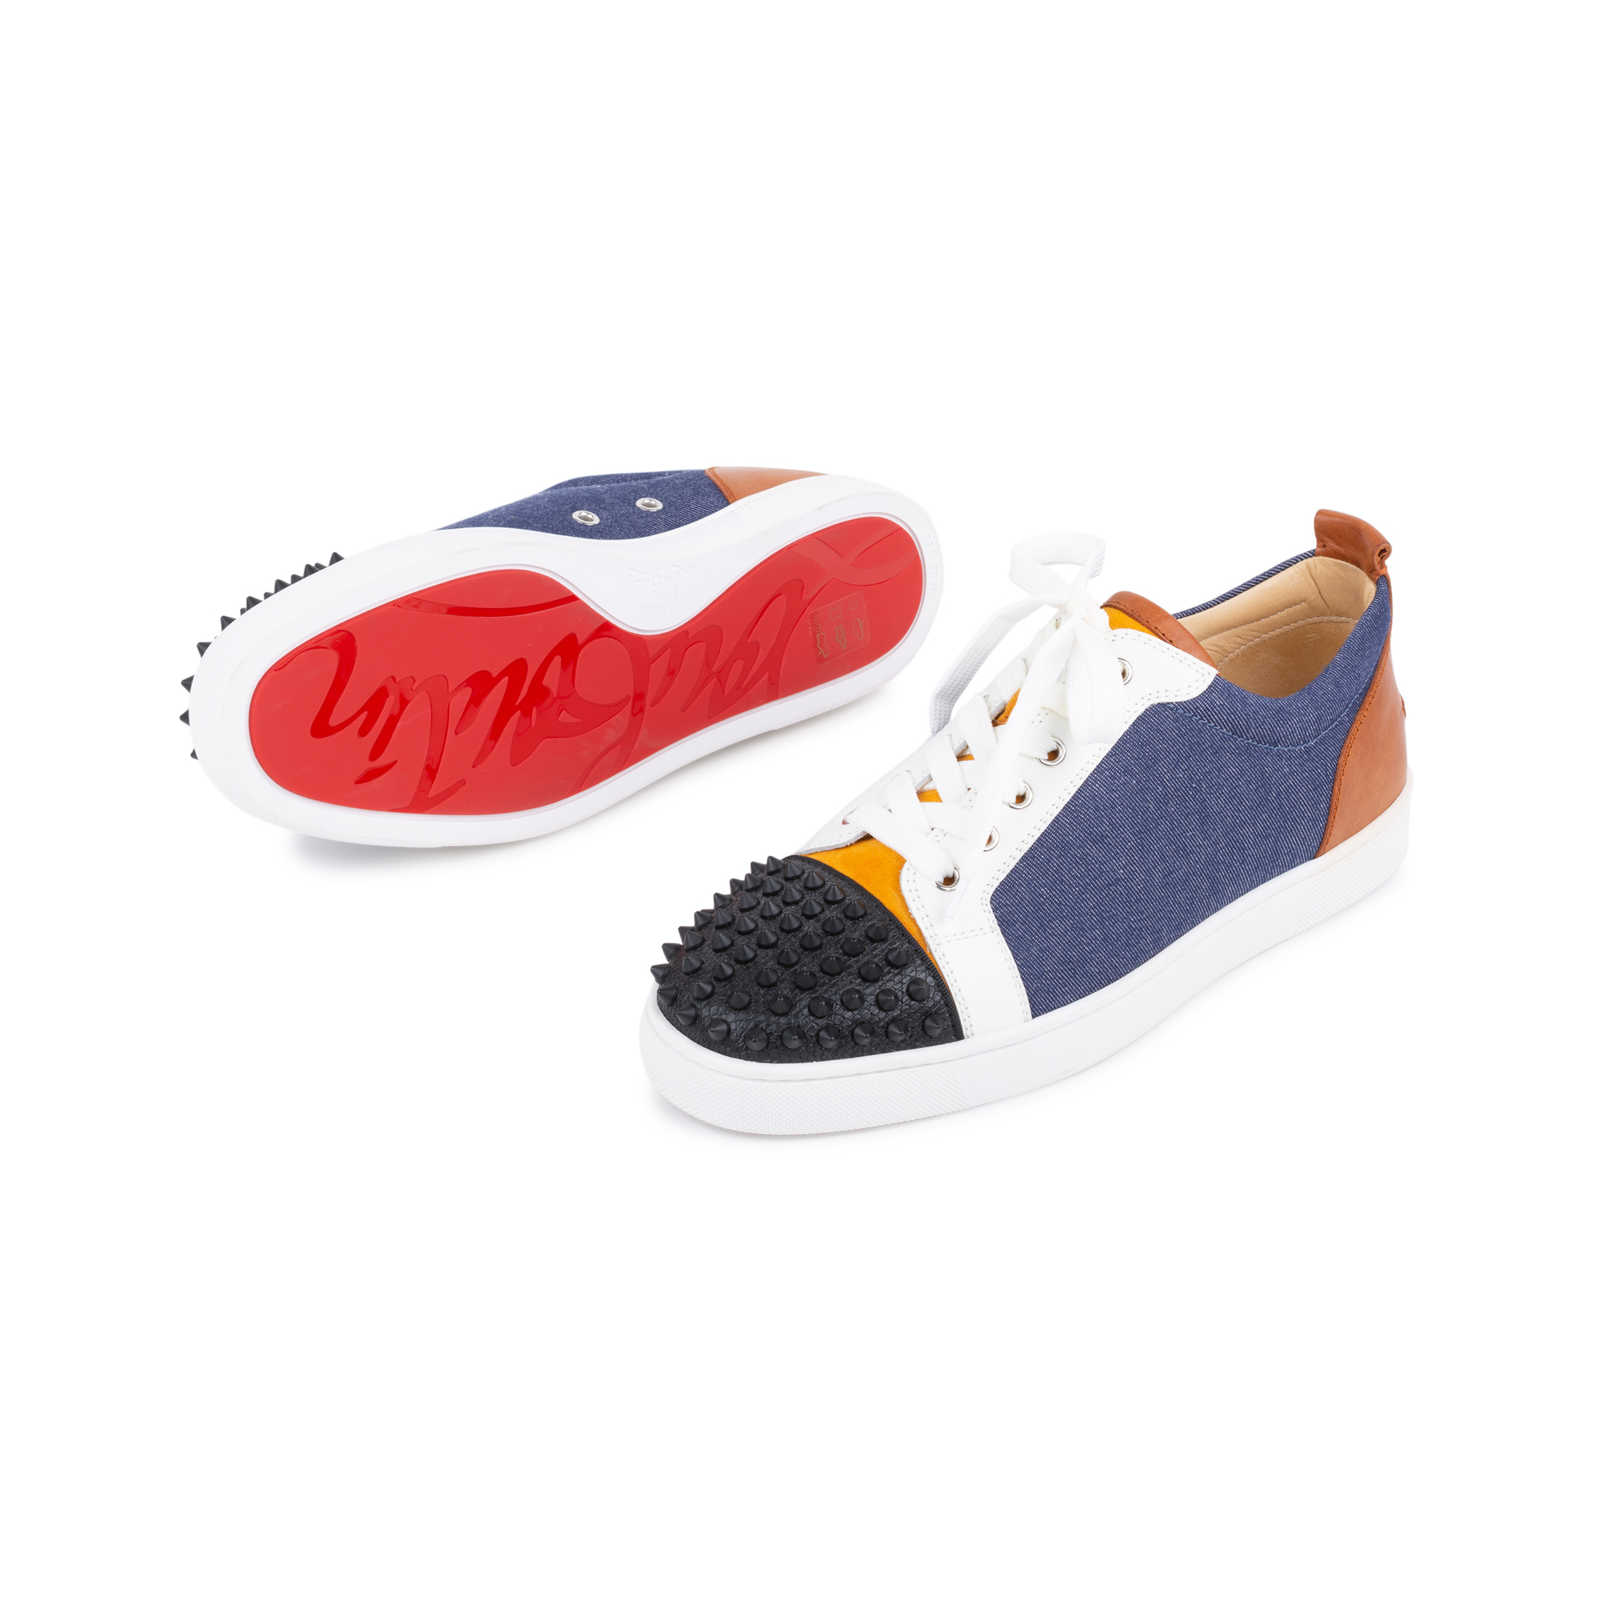 781df283a19 ... Authentic Second Hand Christian Louboutin Louis Junior Spiked Leather  and Denim Sneakers (PSS-601 ...